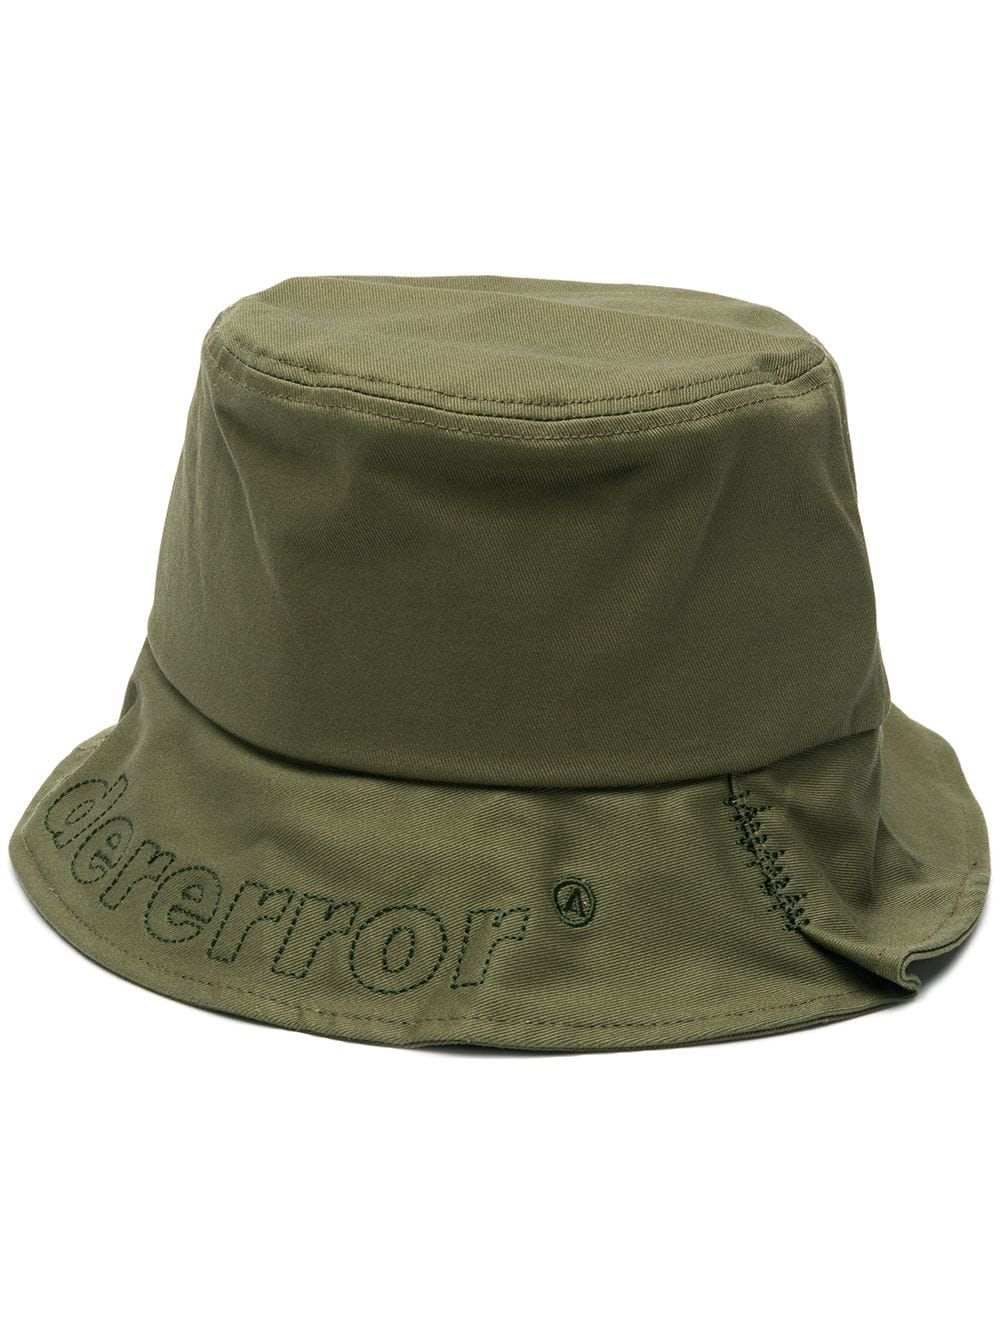 b34a6bfabee Ader Error branded bucket hat